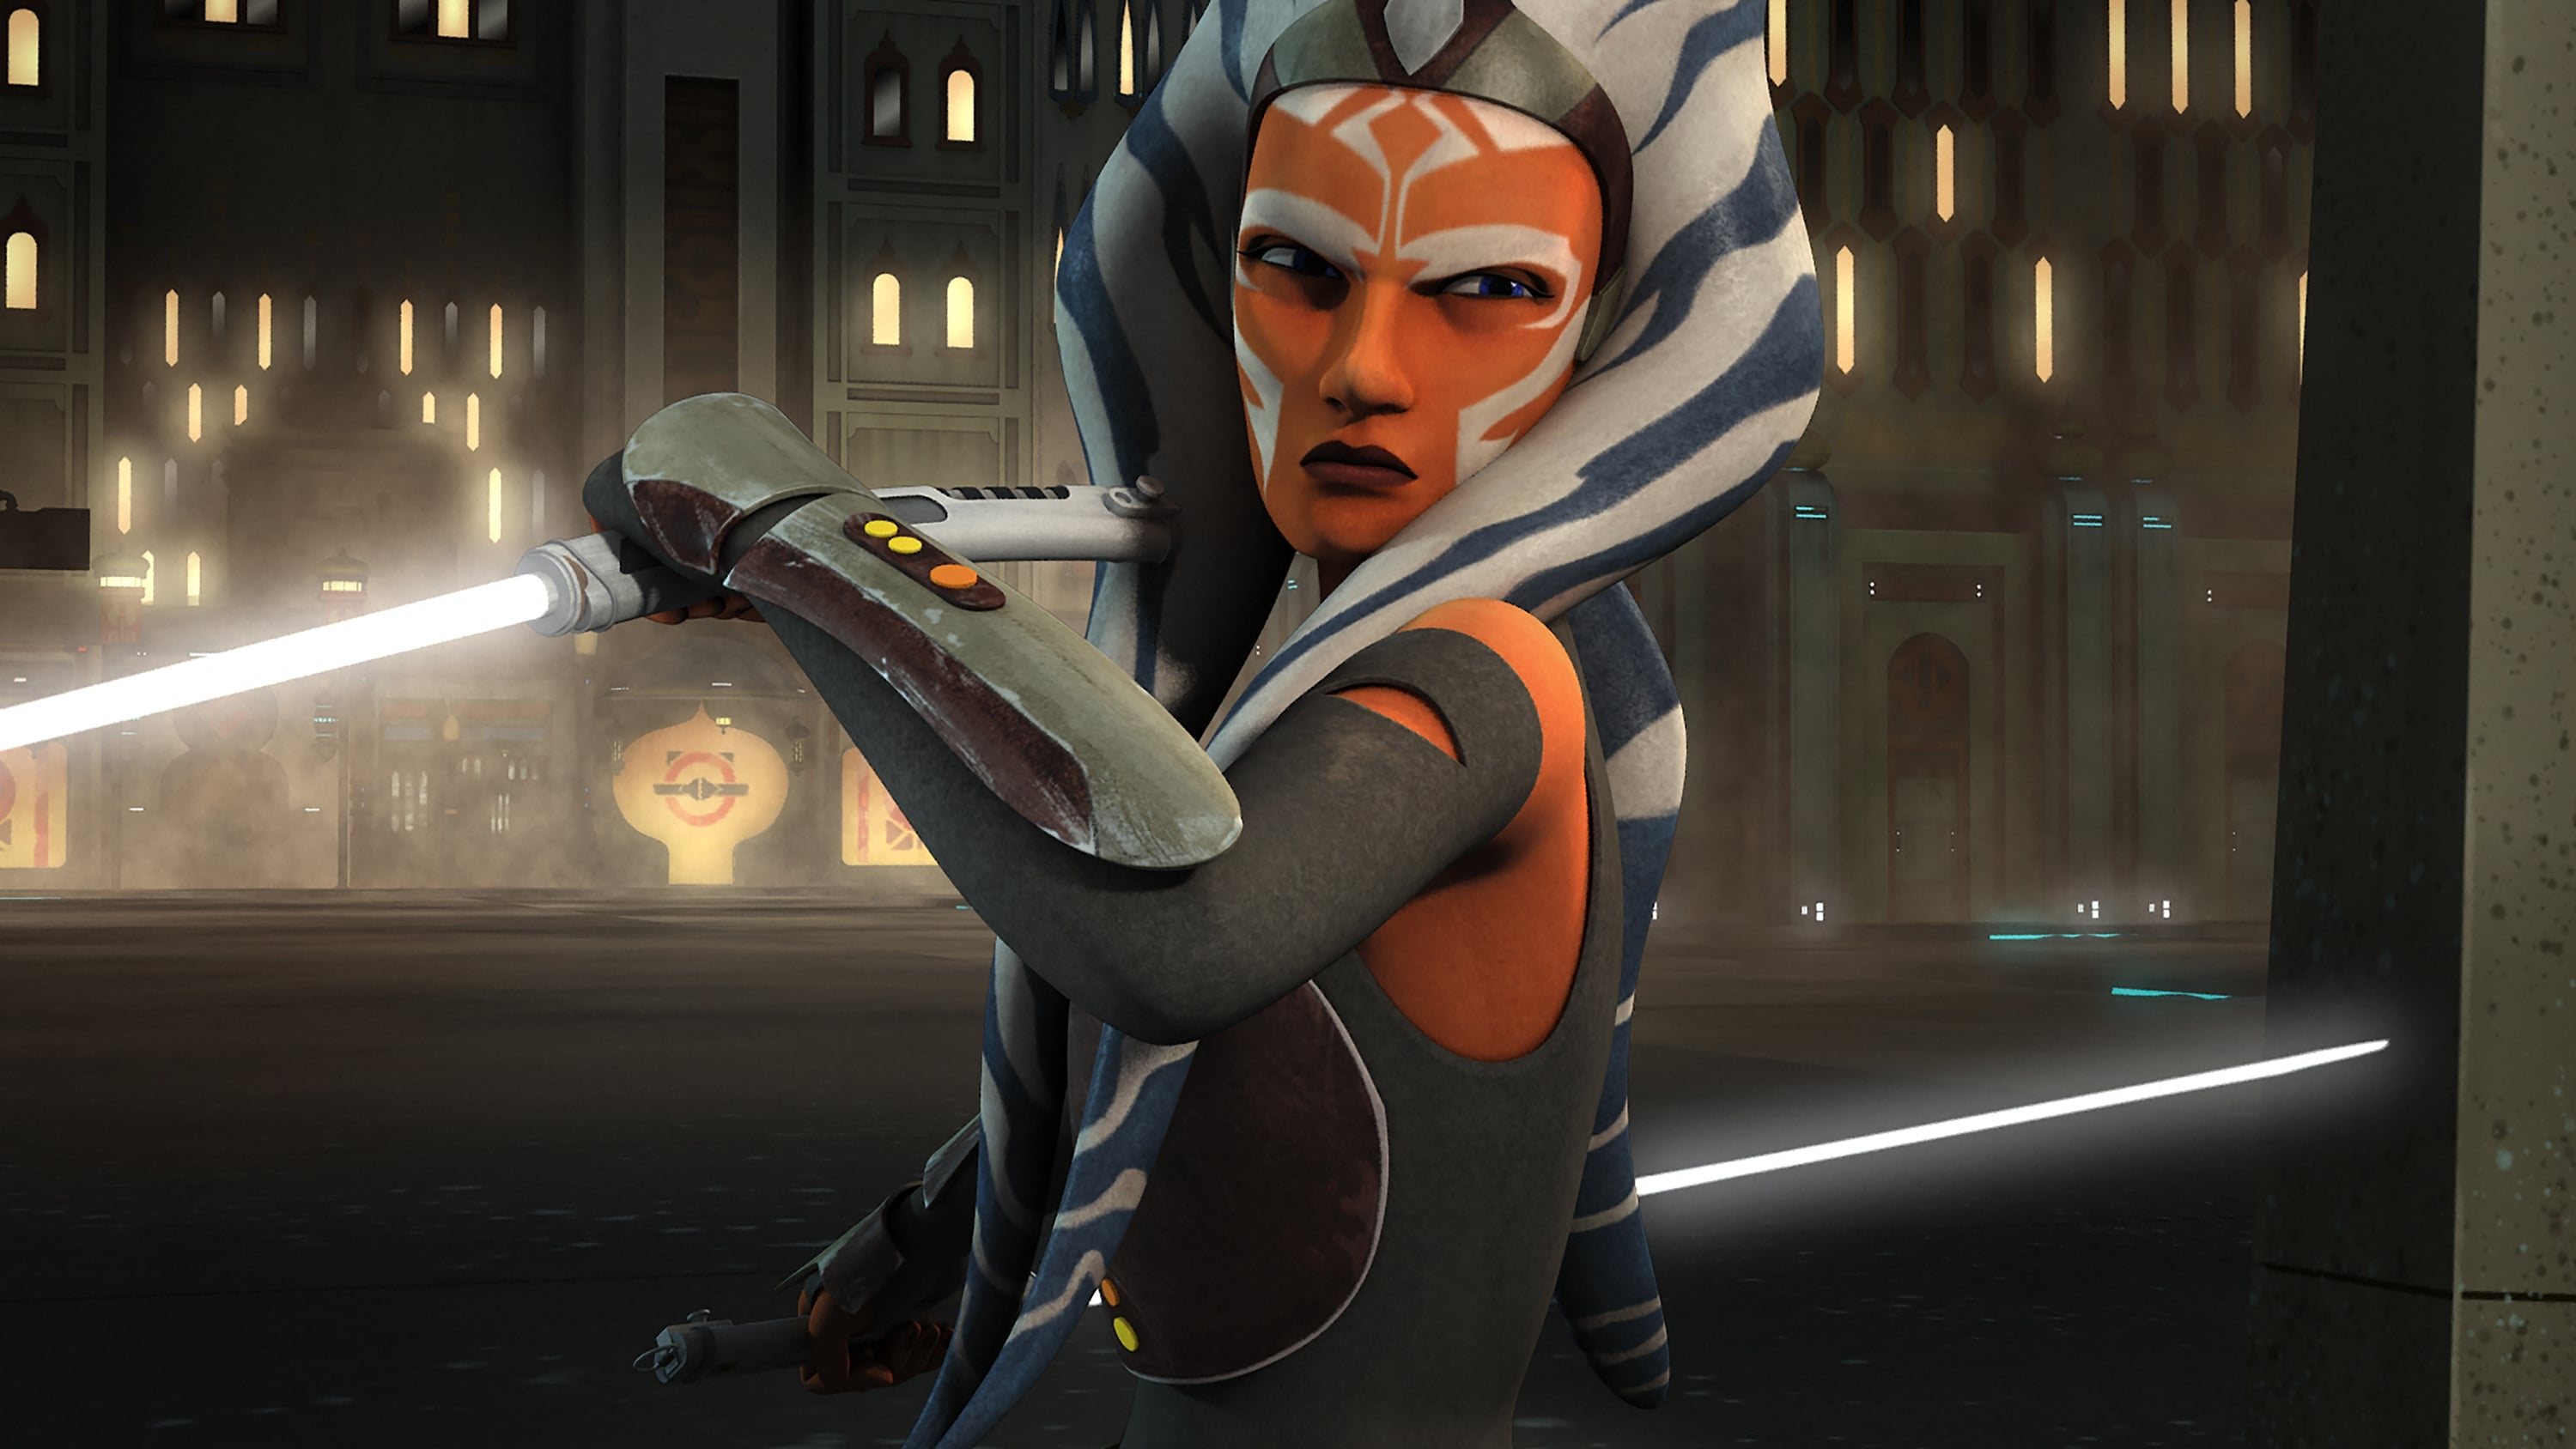 Naga ahsoka tano hardcore video